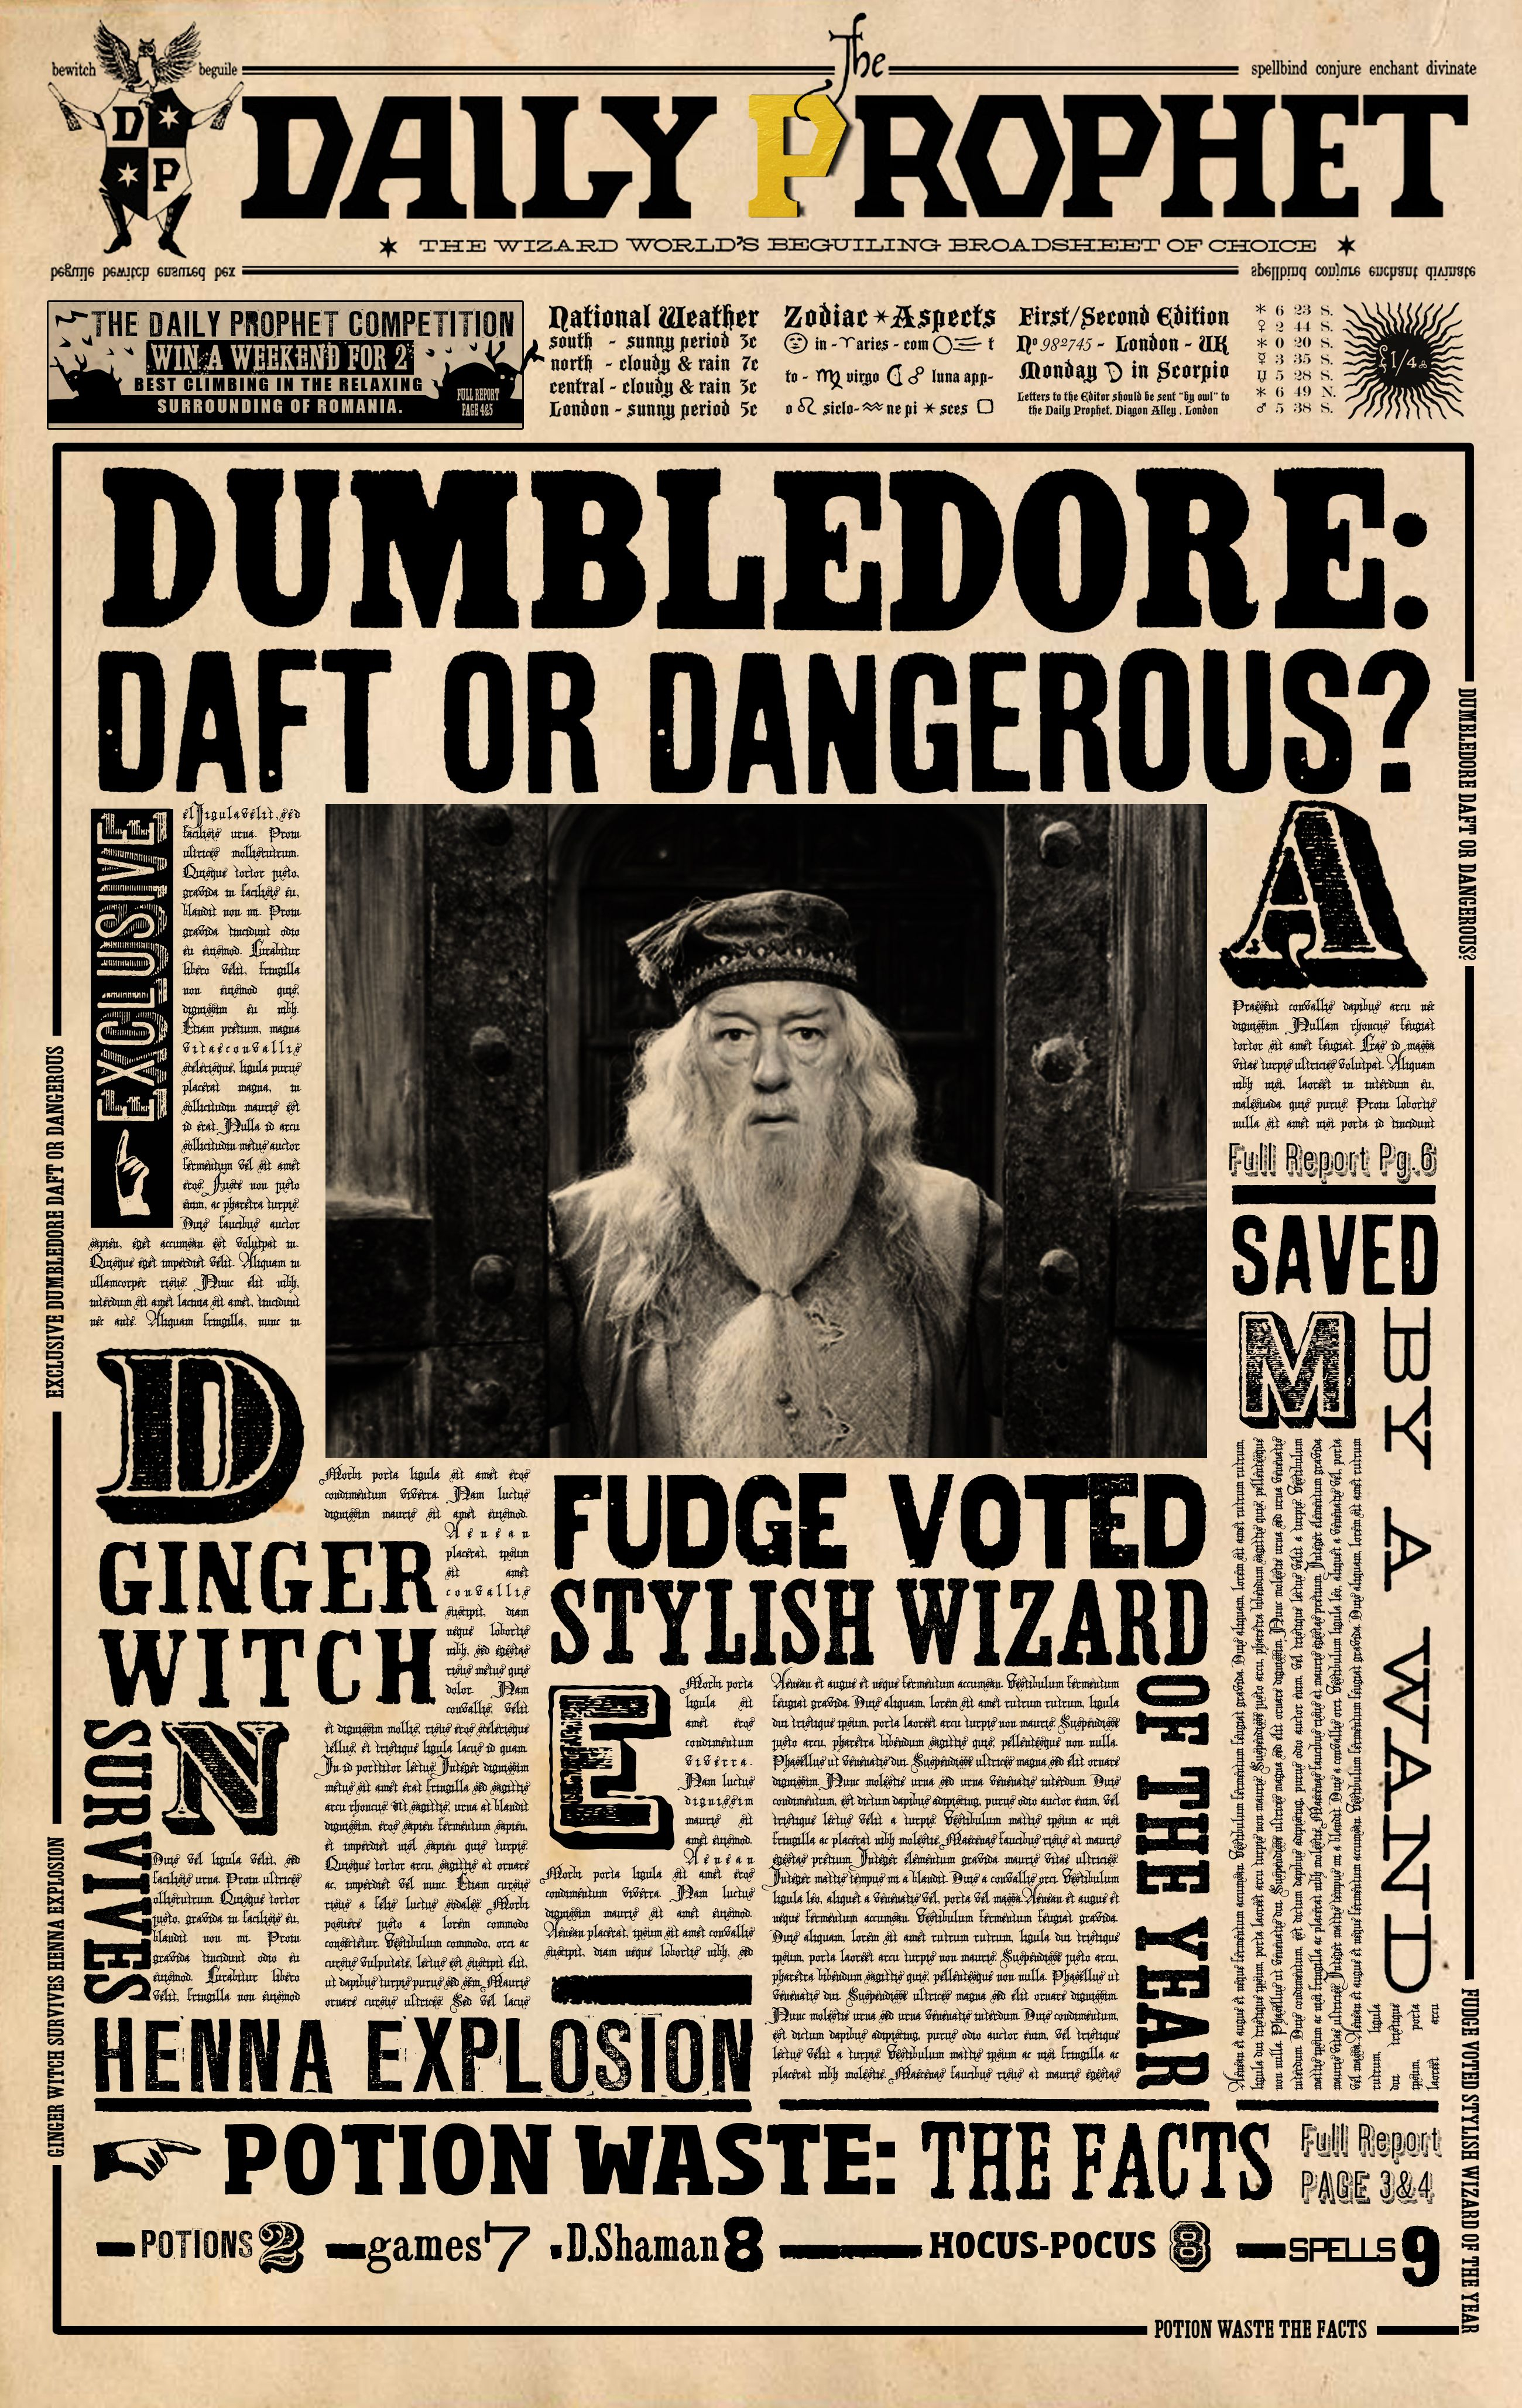 Pinsusie Hammond On Harry Potter Party In 2019   Pinterest - Free Printable Harry Potter Posters